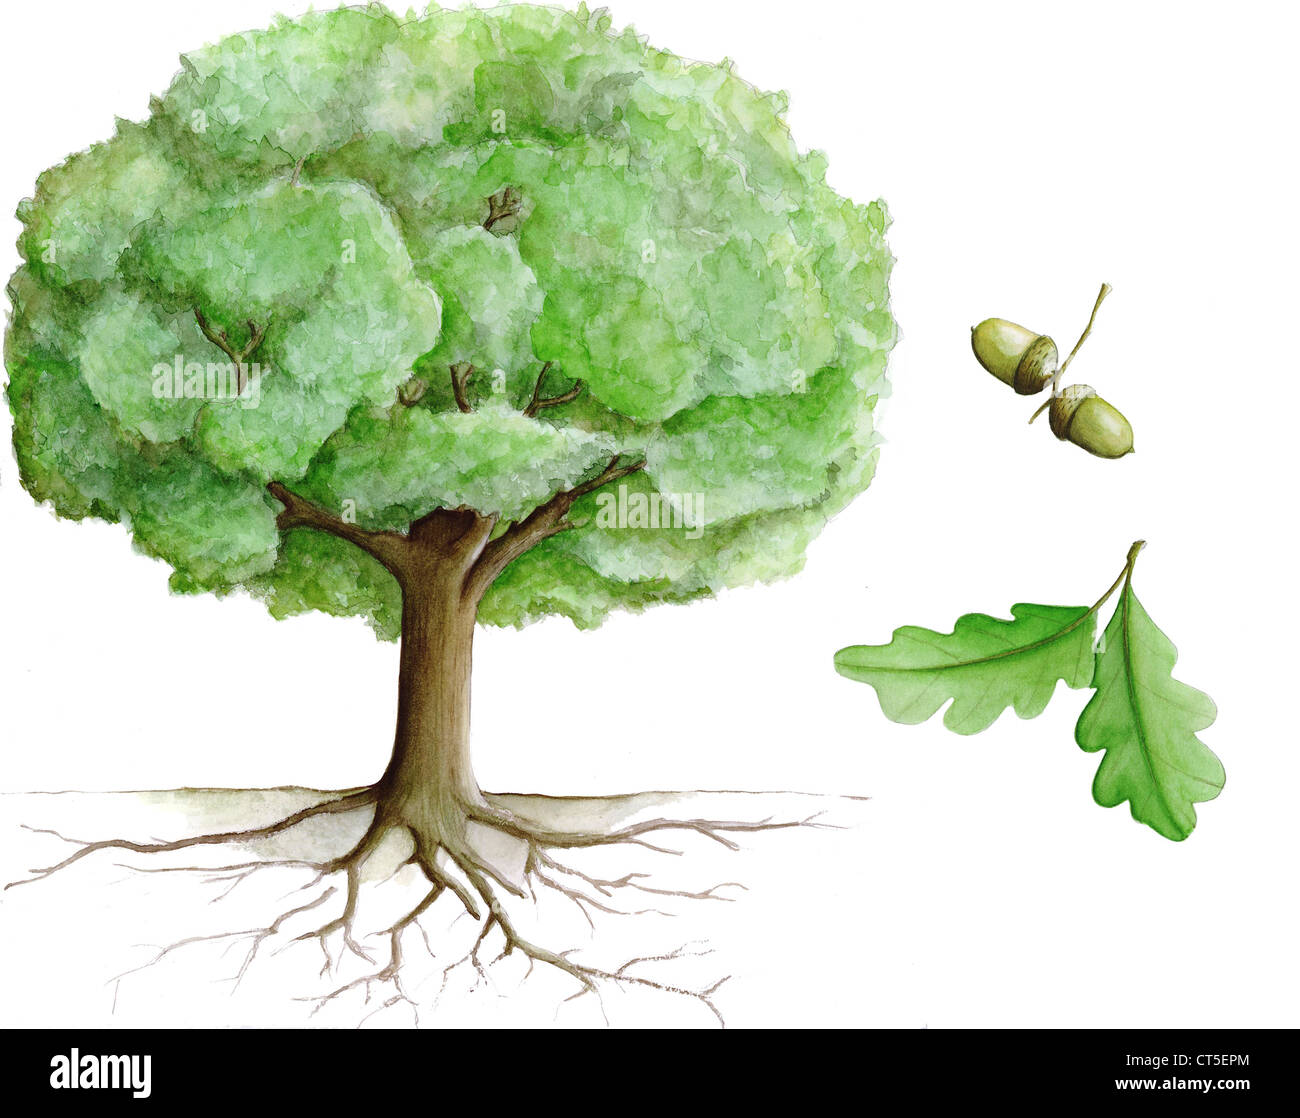 OAK TREE, ILLUSTRATION - Stock Image